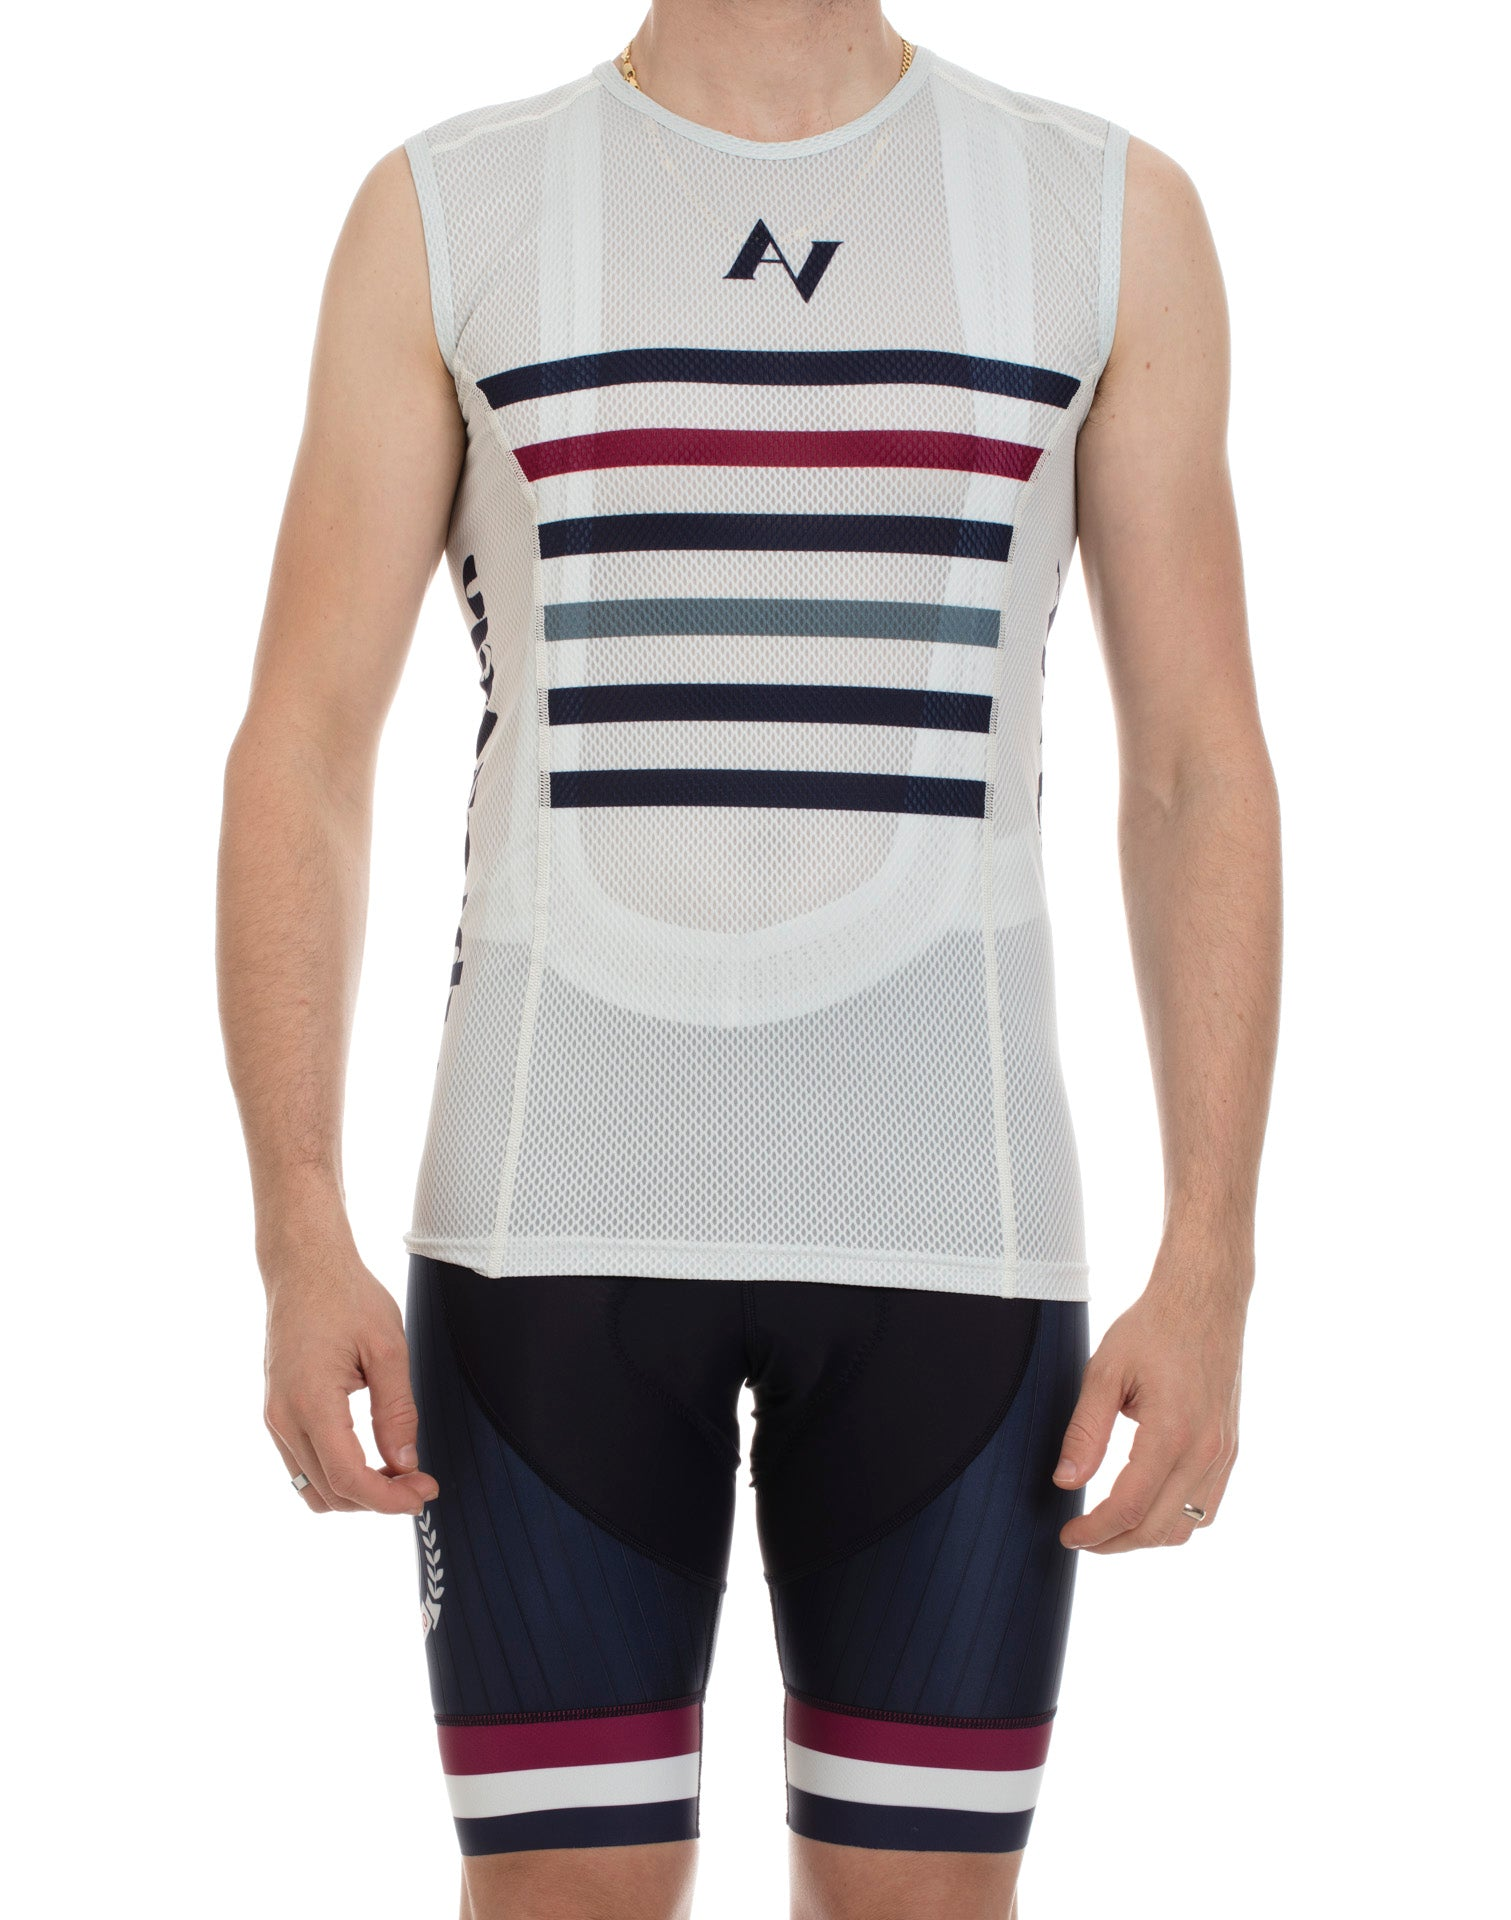 Les H 233 Ritage Base Layer Cycling Performance Gear Apr 232 S